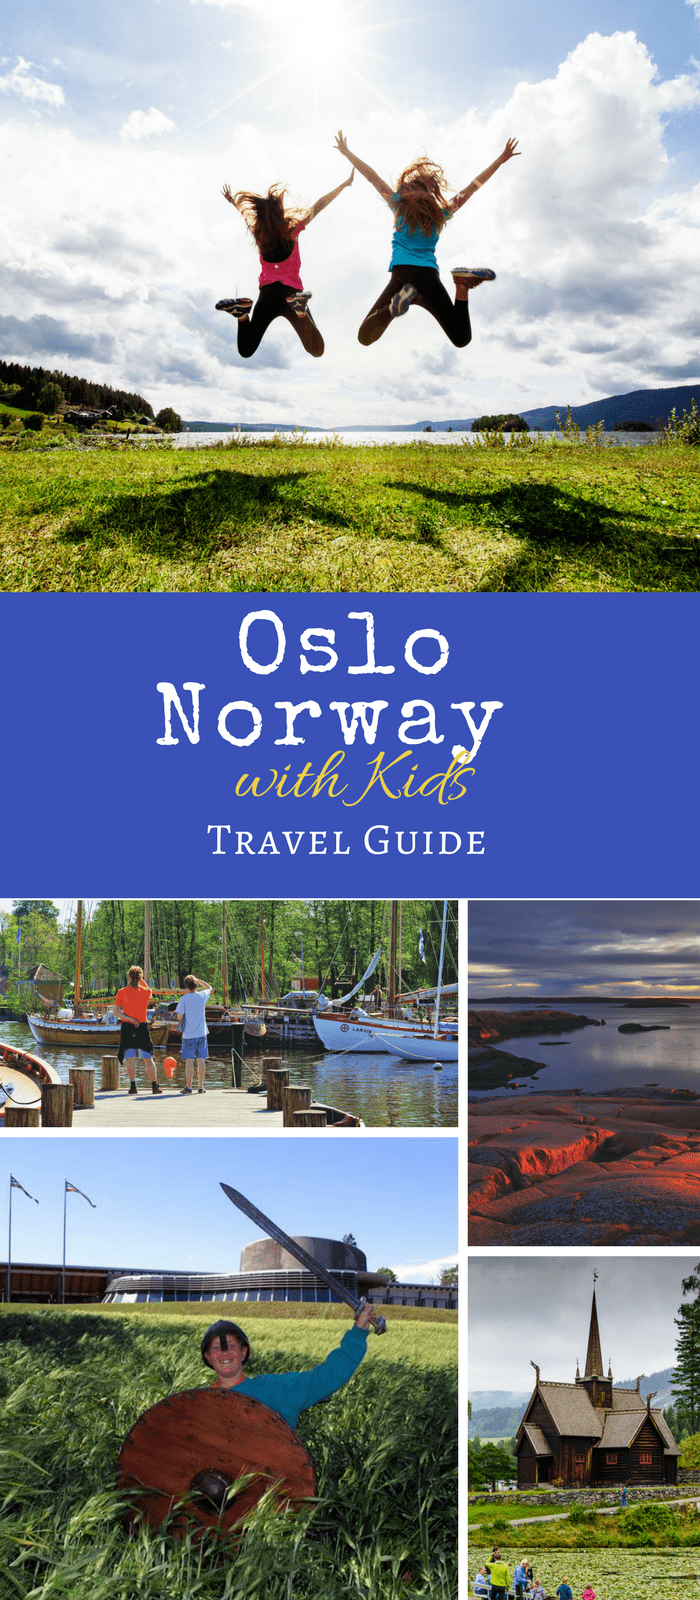 Fun Things to Do in Oslo with Kids - There has never been a better time to go to Norway. See what fun you can have on your next vacation there